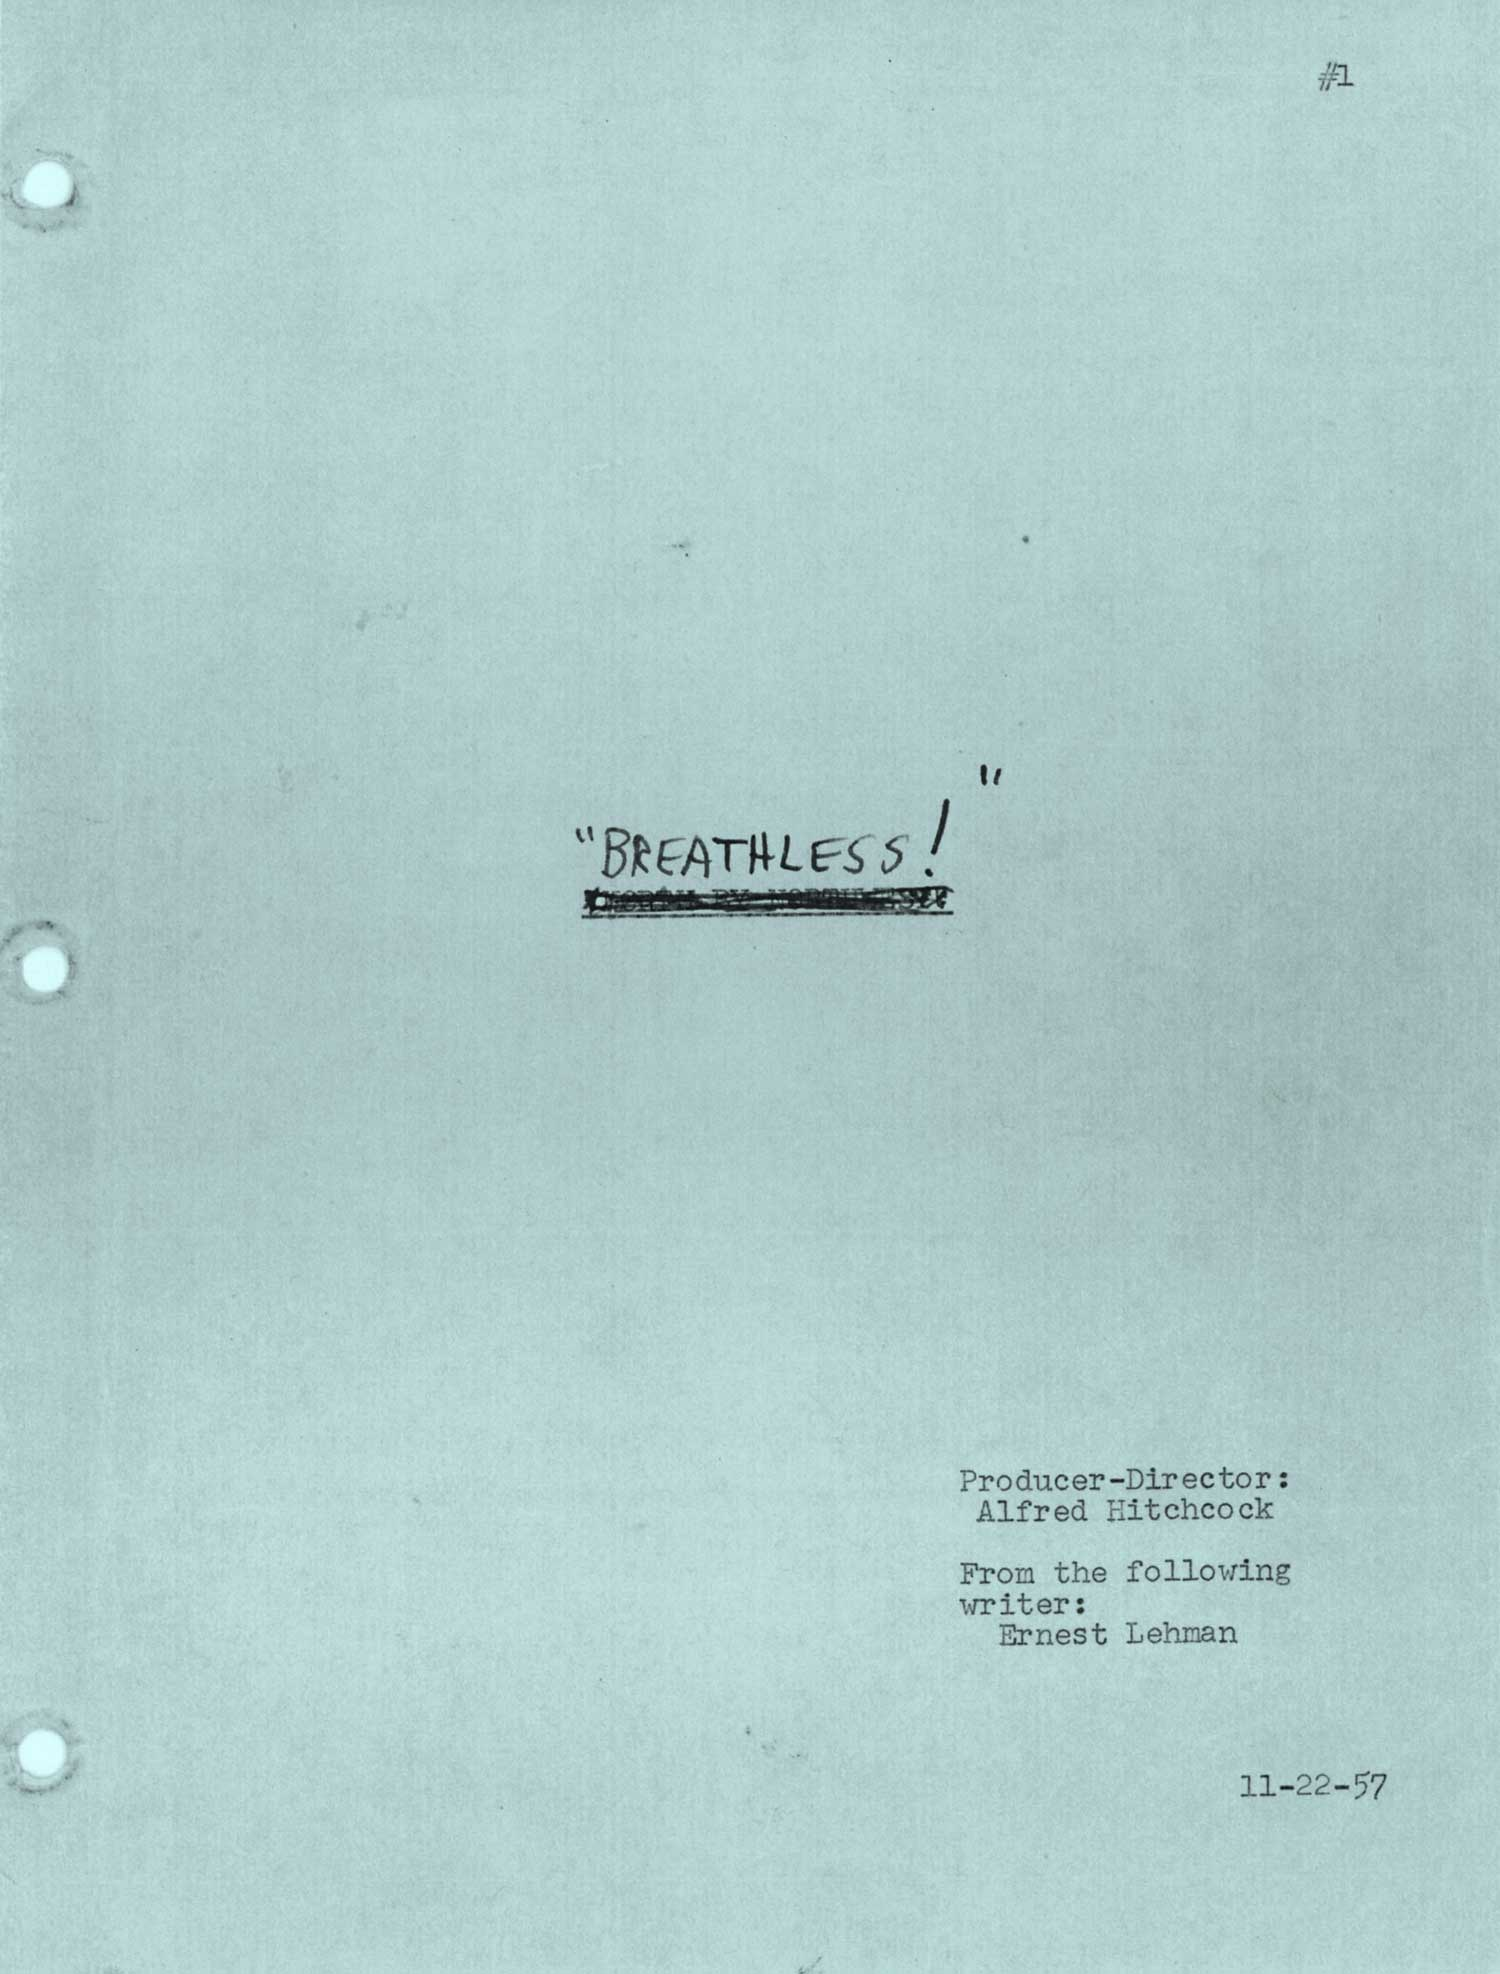 This temporary title for NORTH BY NORTHWEST was later used for the famous 1960 French film.